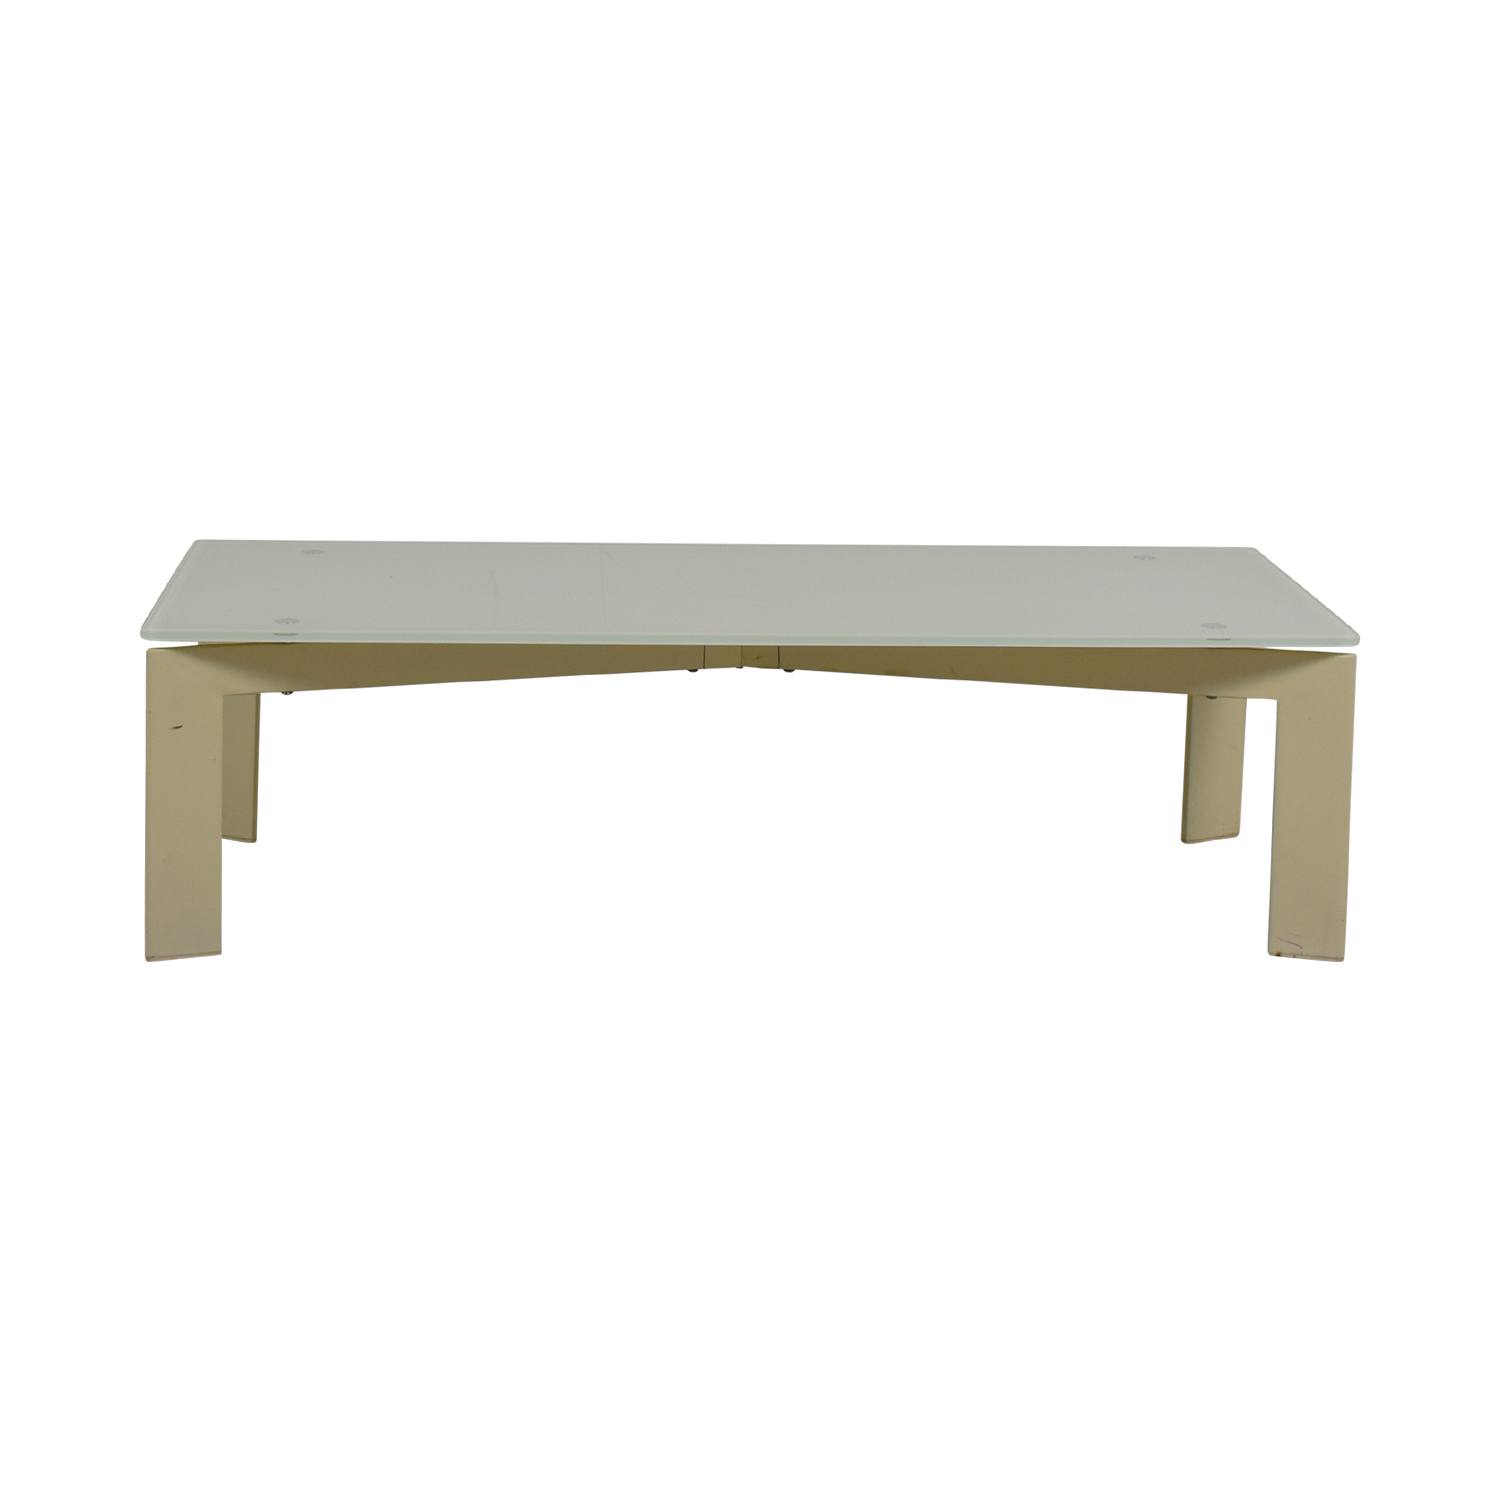 69 off white and beige coffee table tables Tables for coffee shop